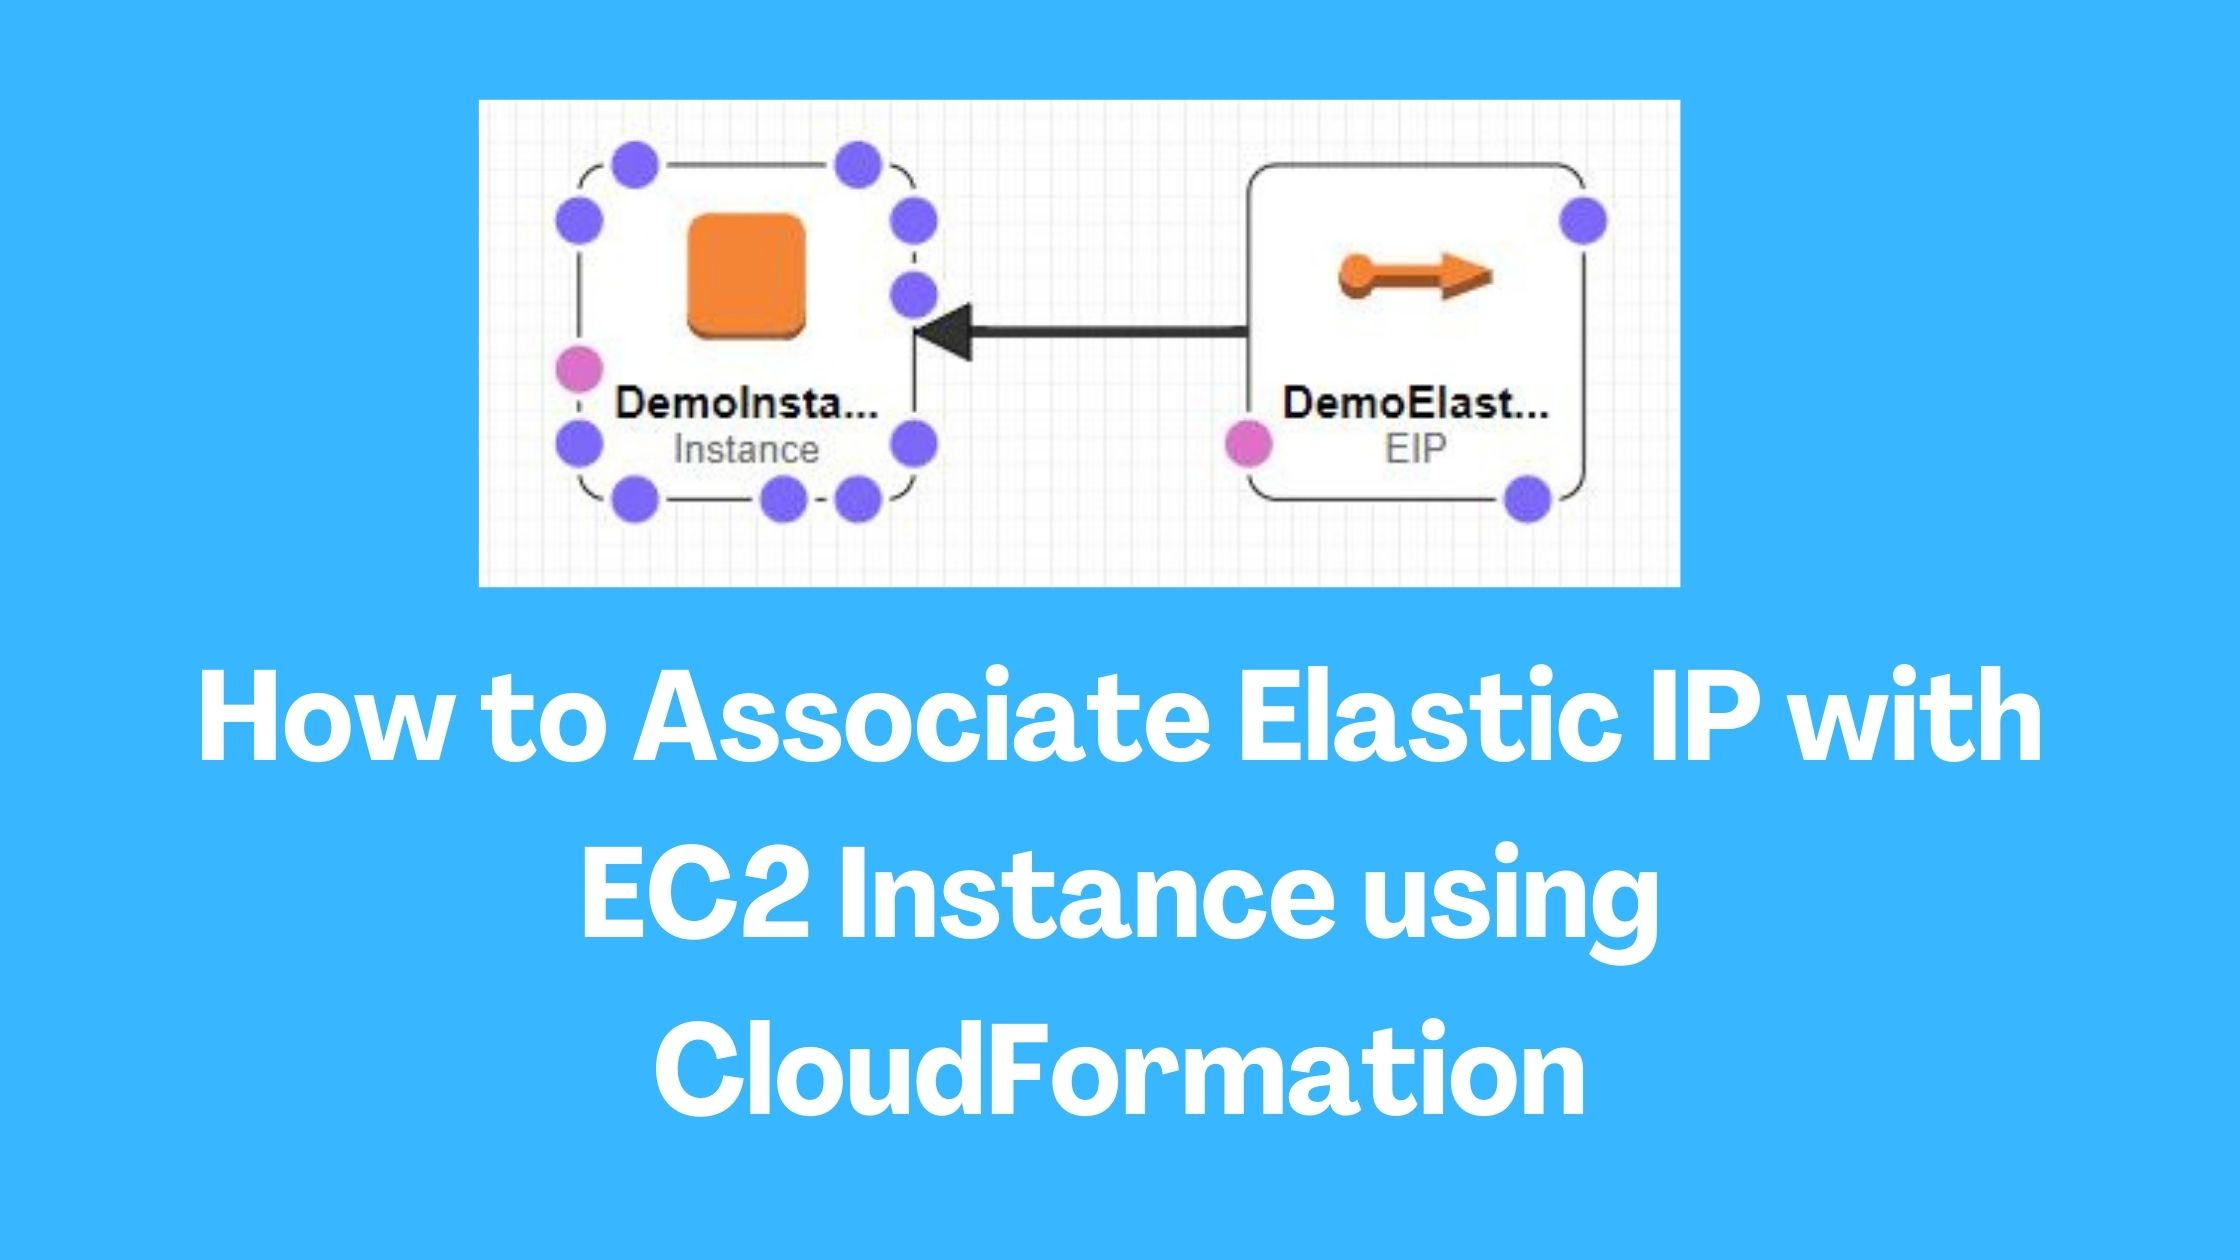 How to Associate Elastic IP with EC2 Instance using CloudFormation